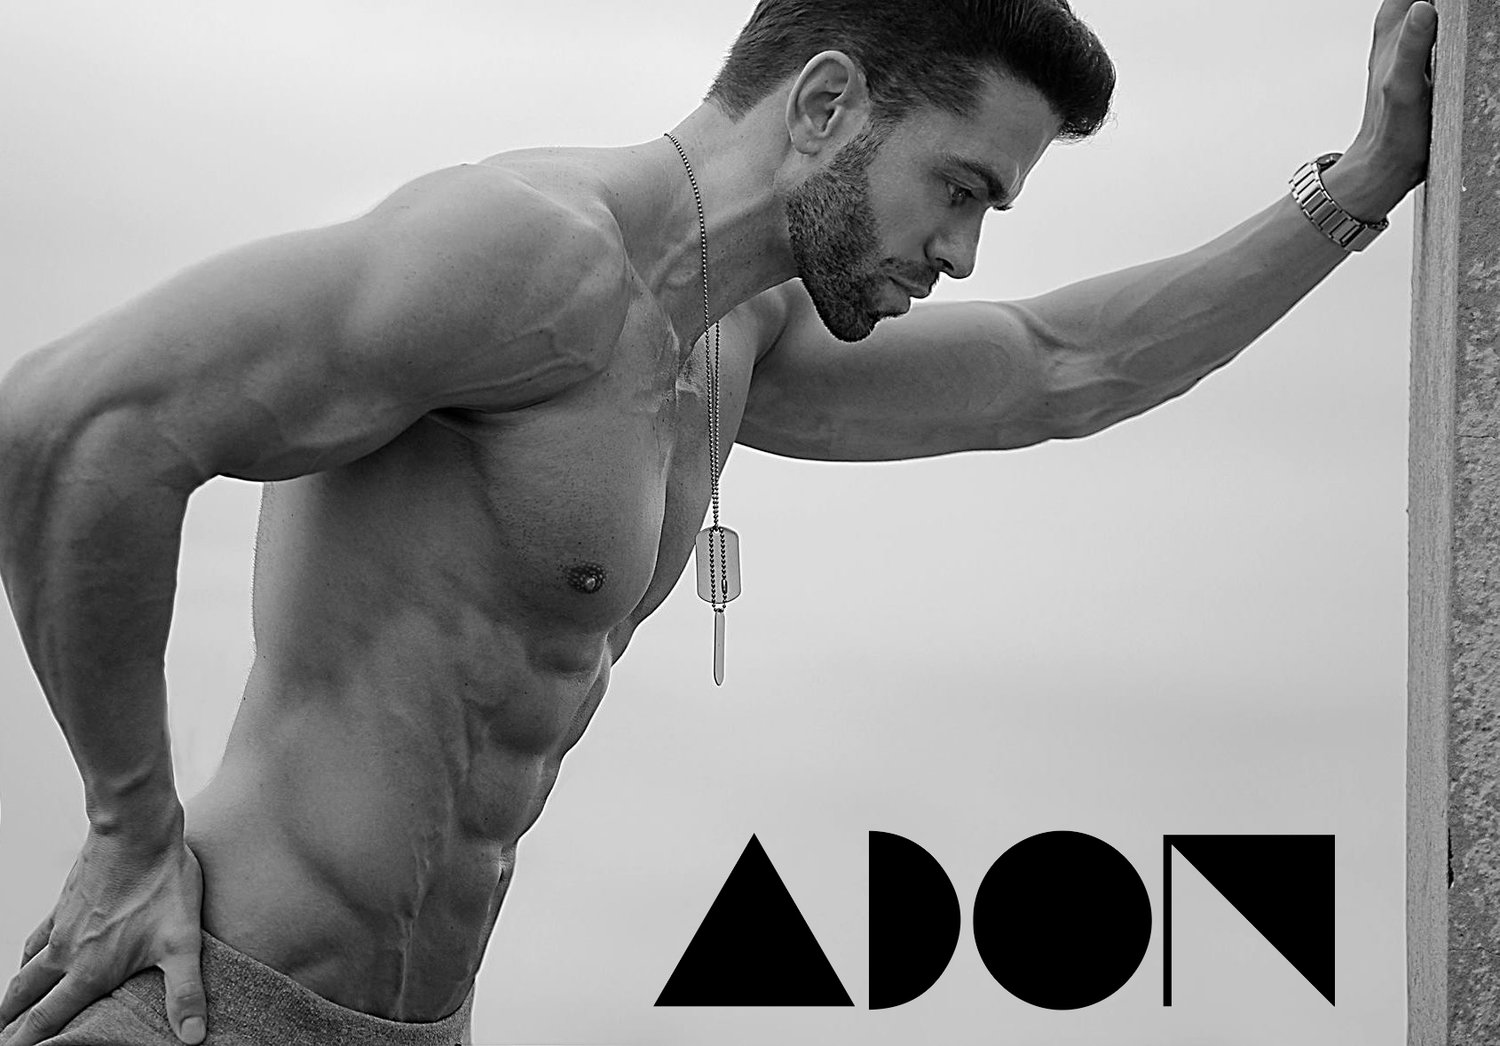 Adon Exclusive: Model Miro Slavzikic